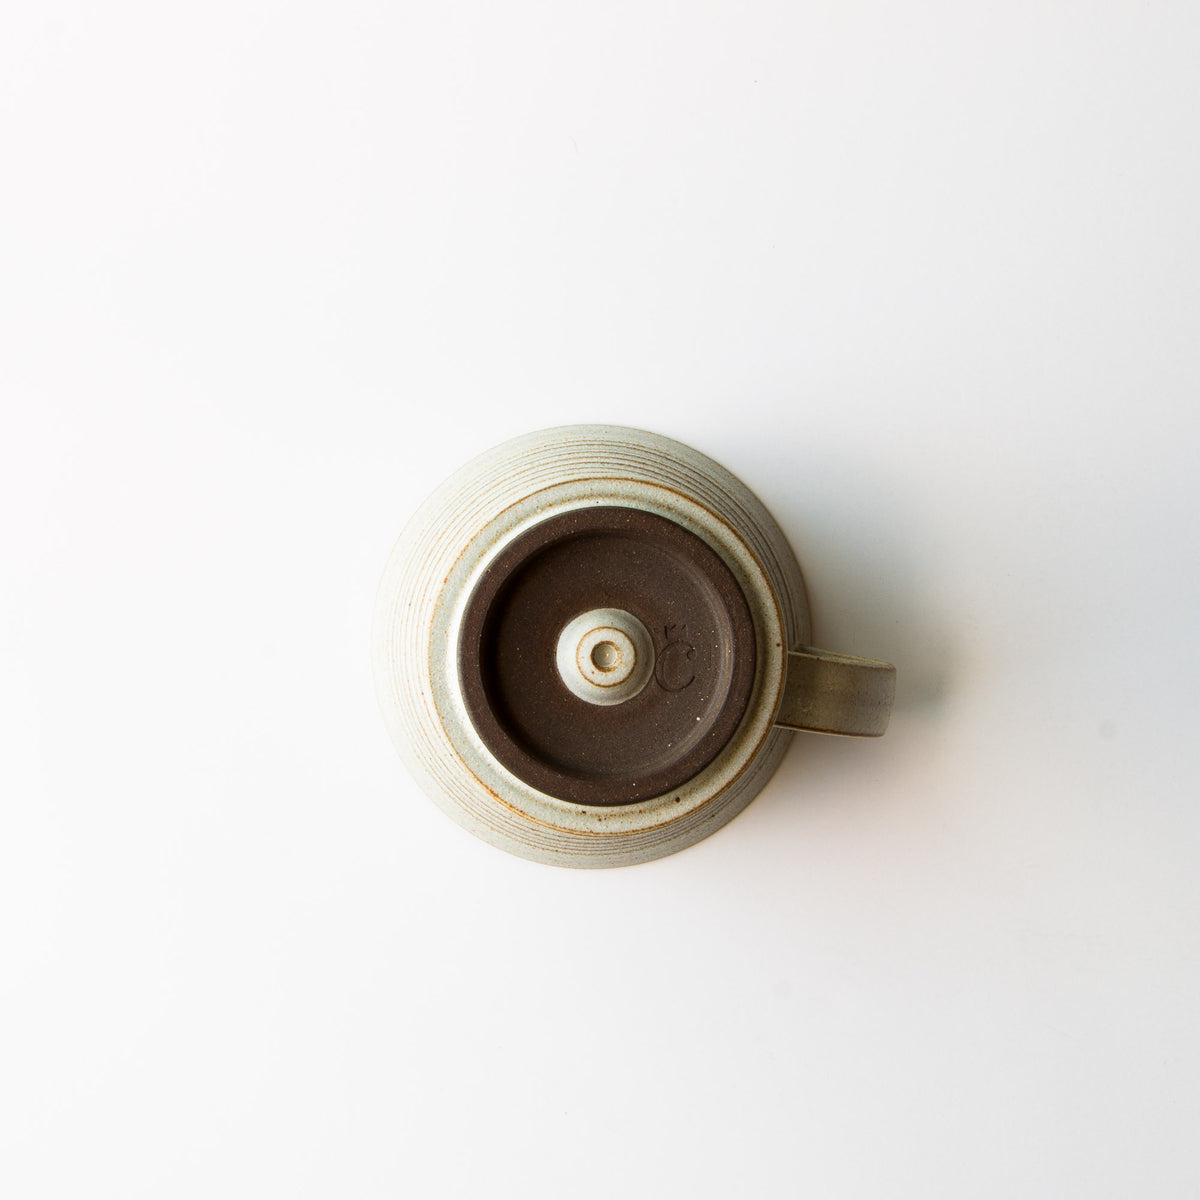 Bottom View - Greige Colour - Handmade Ceramic Pour-Over Coffee Dripper